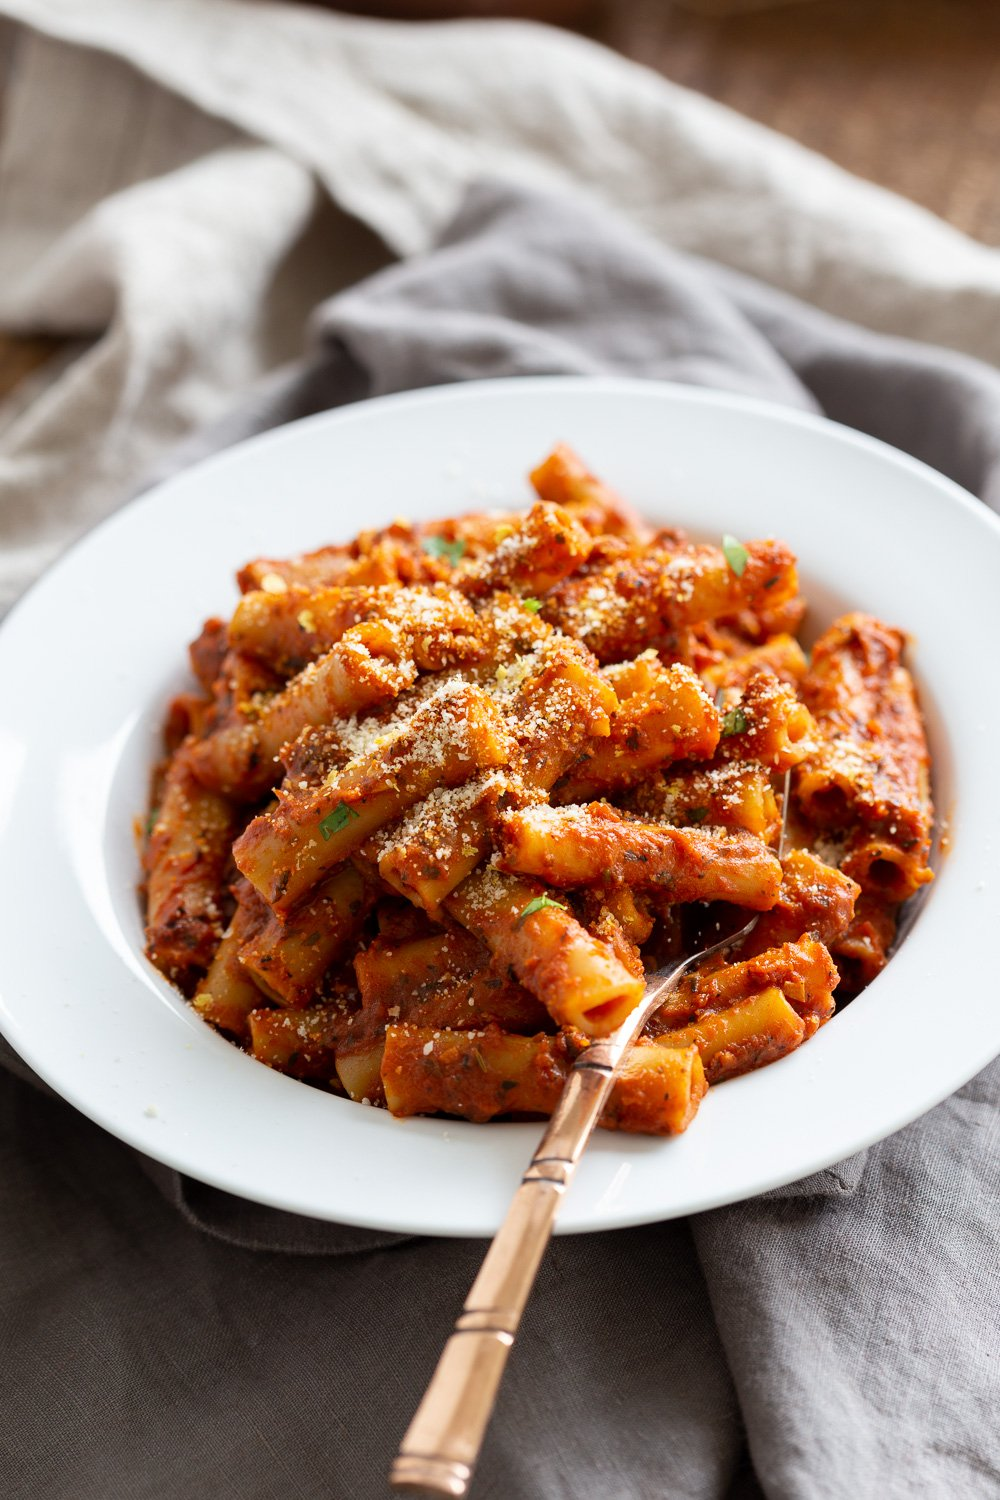 Instant Pot Ziti with Tomato Sauce. Date Night Quick Pasta with Ziti, sprinkled with vegan parm and fresh herbs. #Vegan #Soyfree #Recipe #VeganRicha #instantPot #pasta . Easily #Glutenfree, #Nutfree